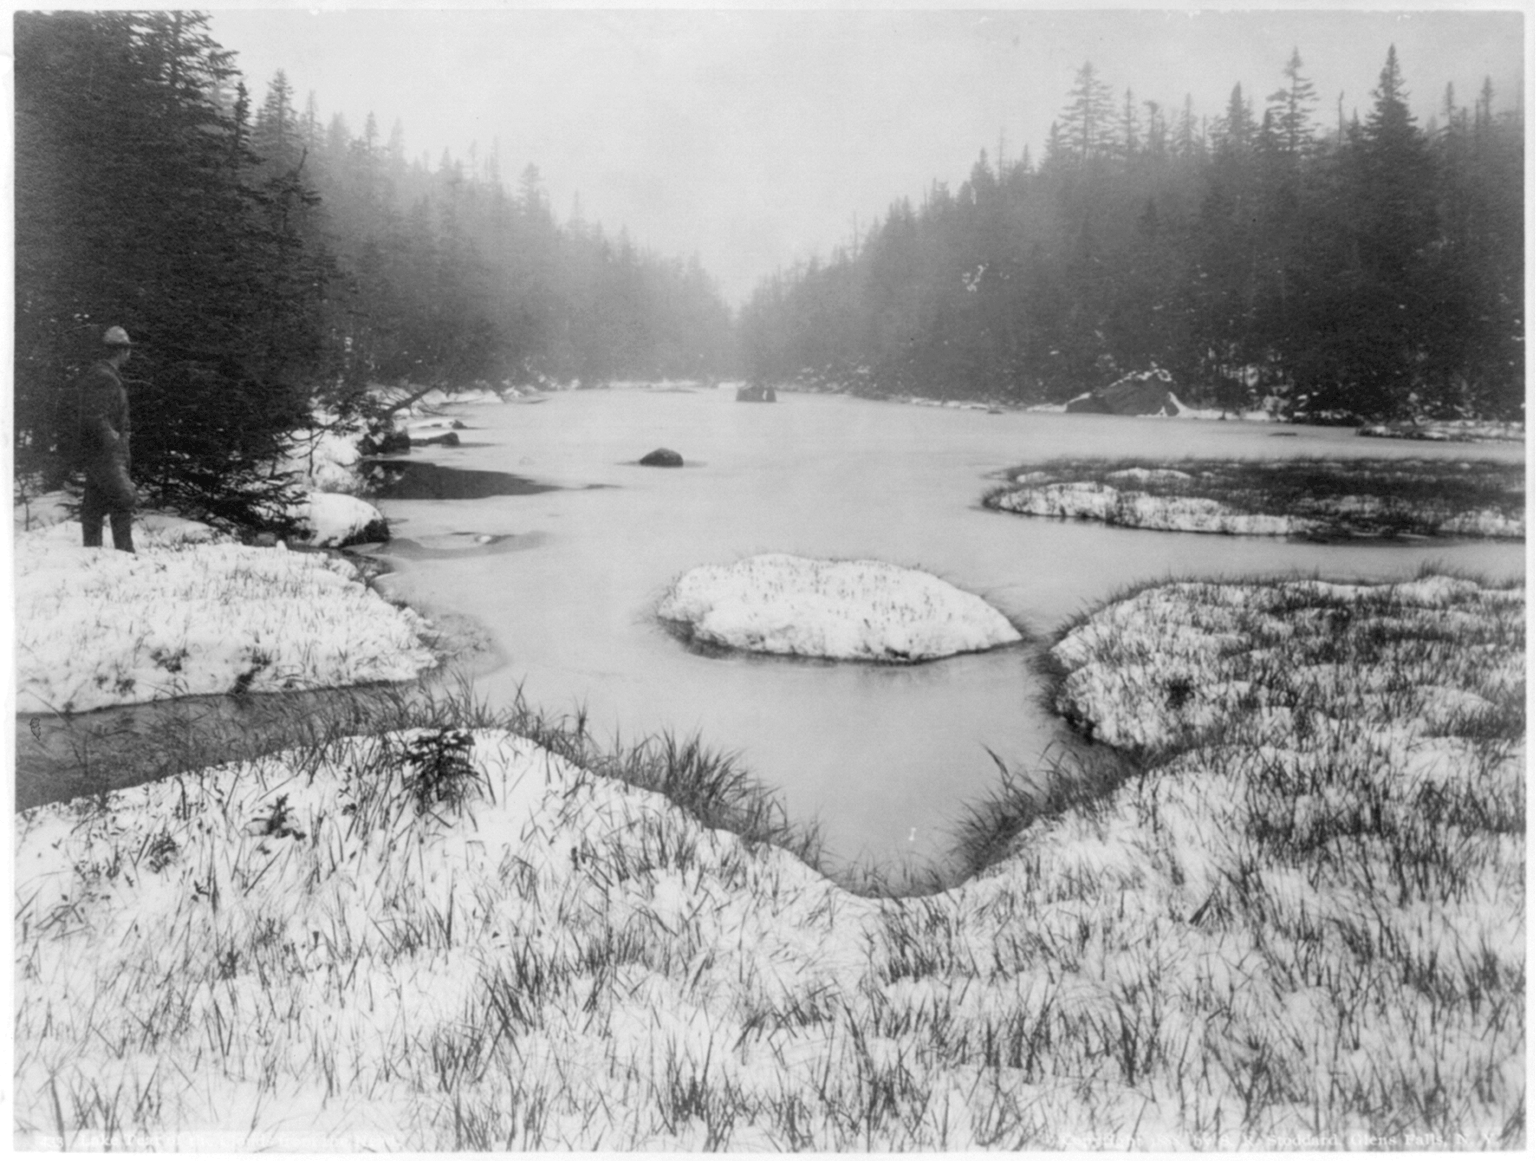 Adirondack_Mountains,_N.Y.-_Lake_Tear_of_the_Clouds_by_Stoddard,_Seneca_Ray.png